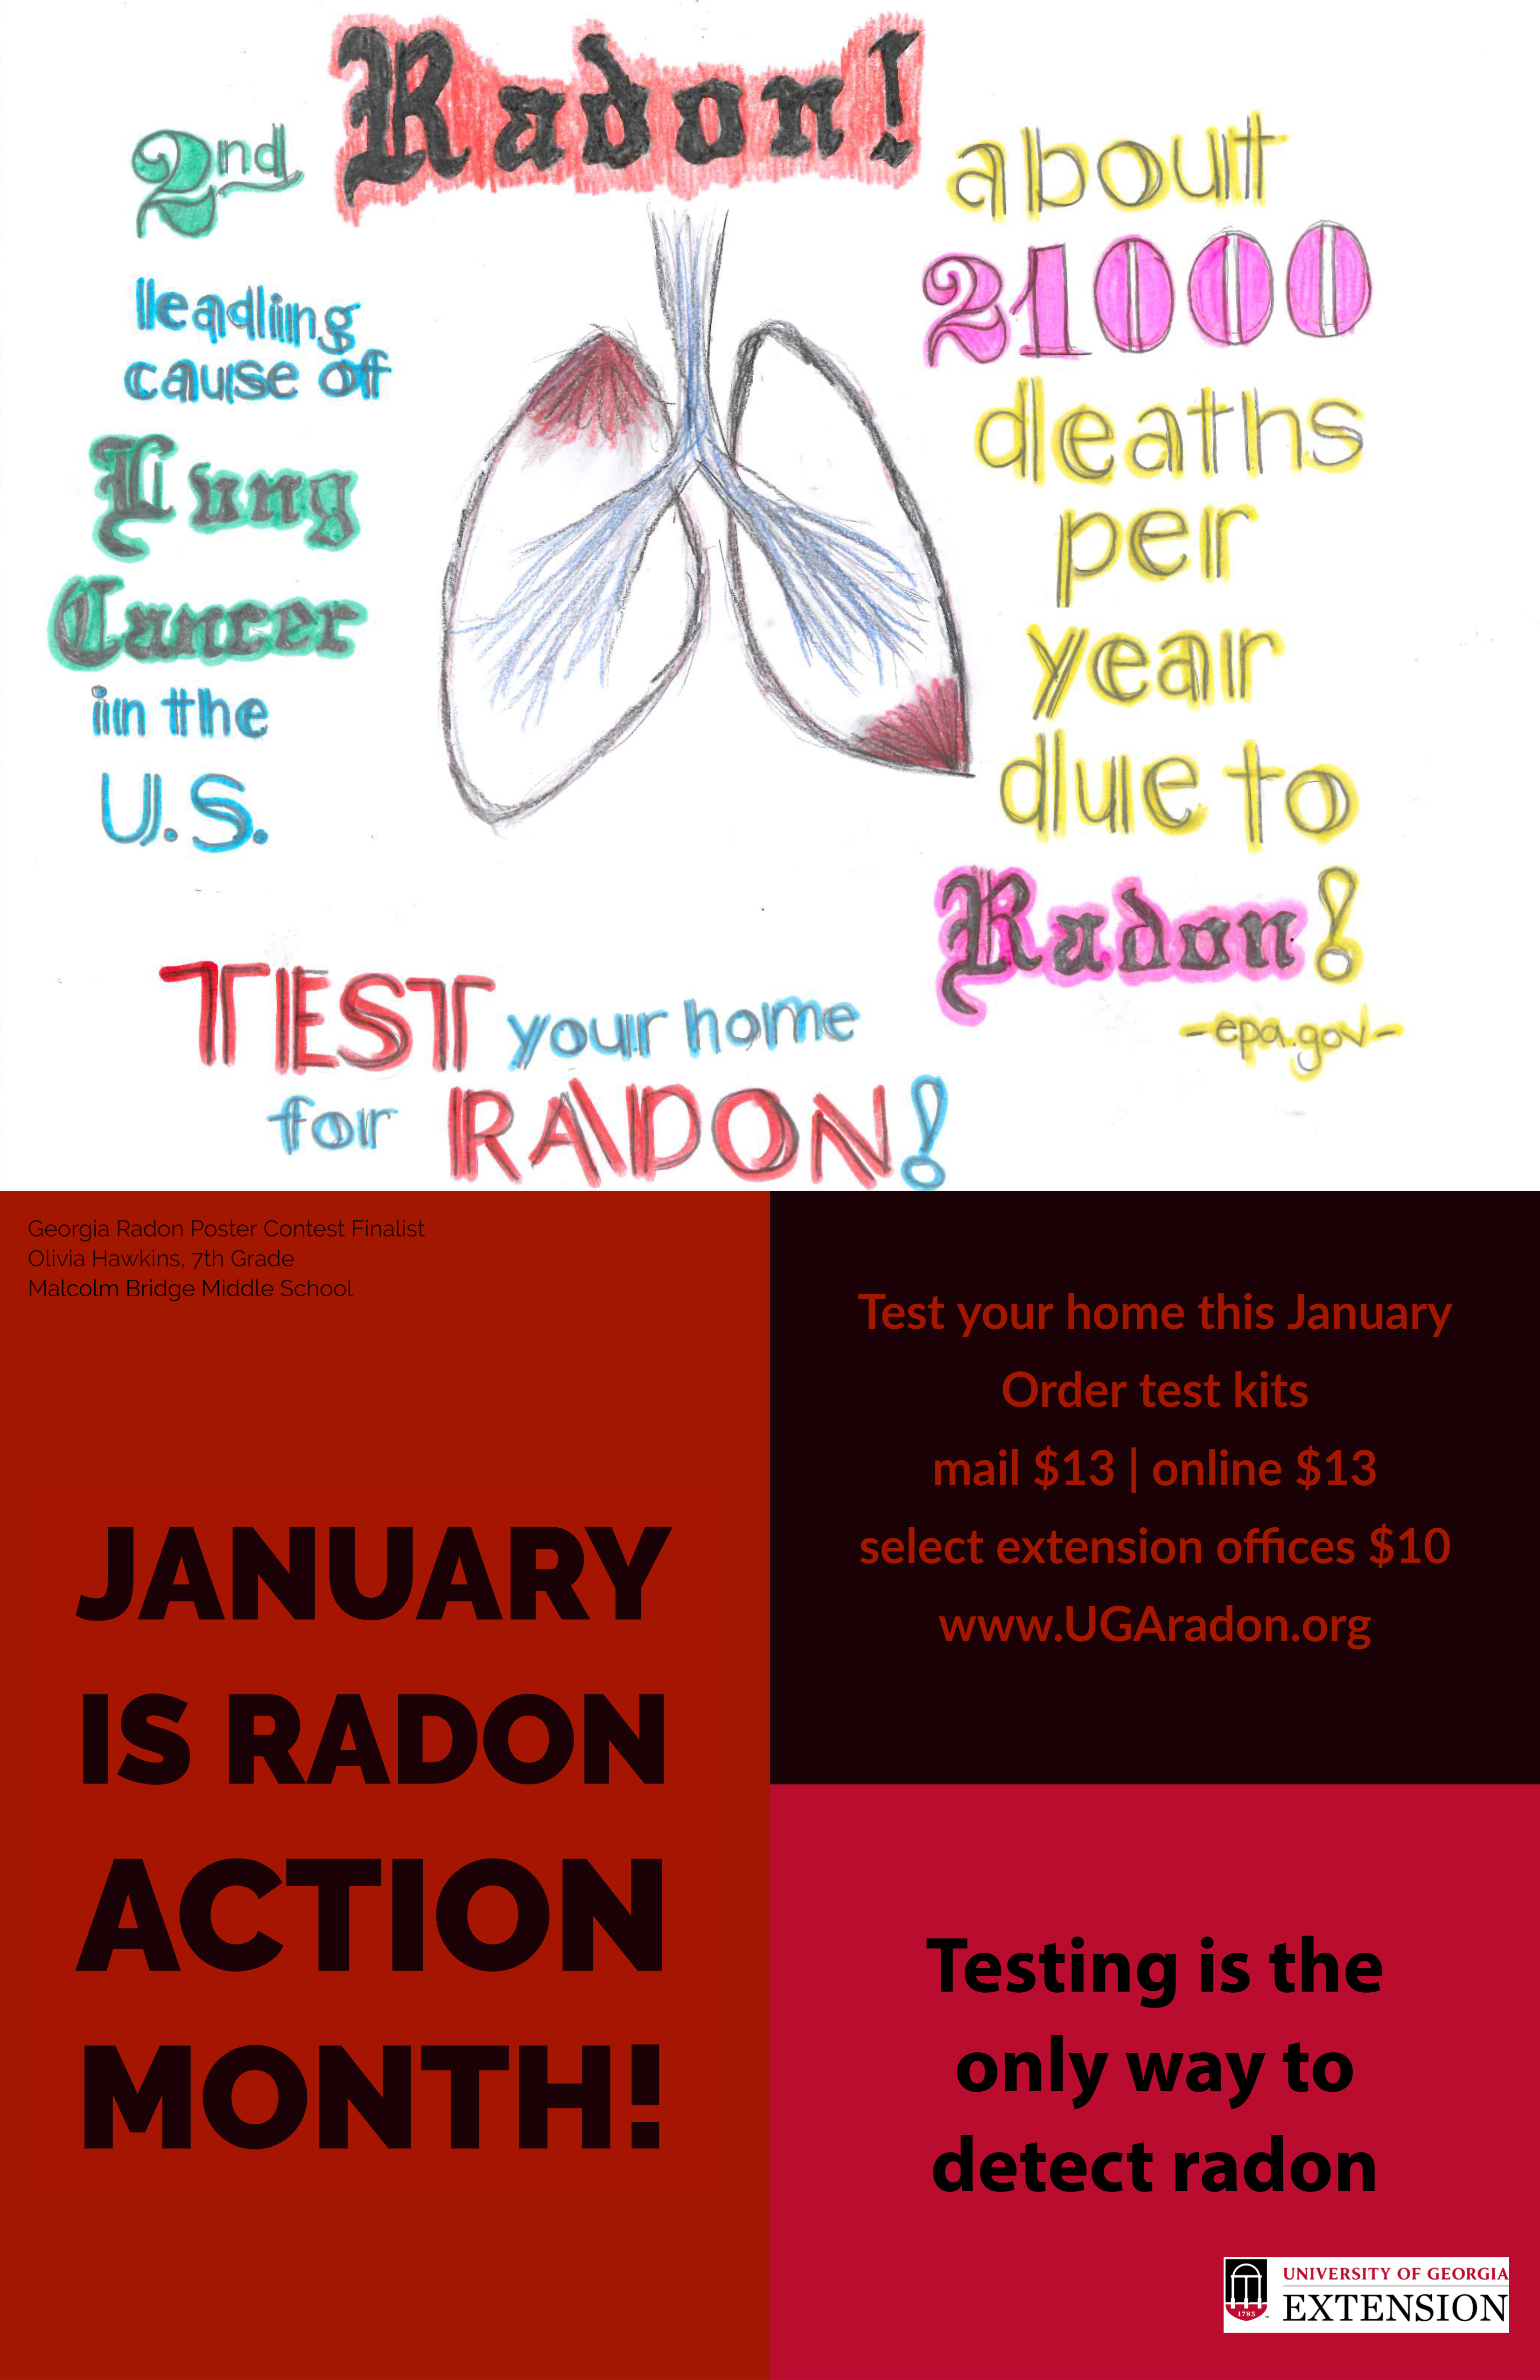 Olivia Hawkins, a seventh-grade student at Malcolm Bridge Middle School in Oconee County member from Athens, Georgia, was named a finalist in the 2019 UGA Extension Radon Education Program Poster Contest.